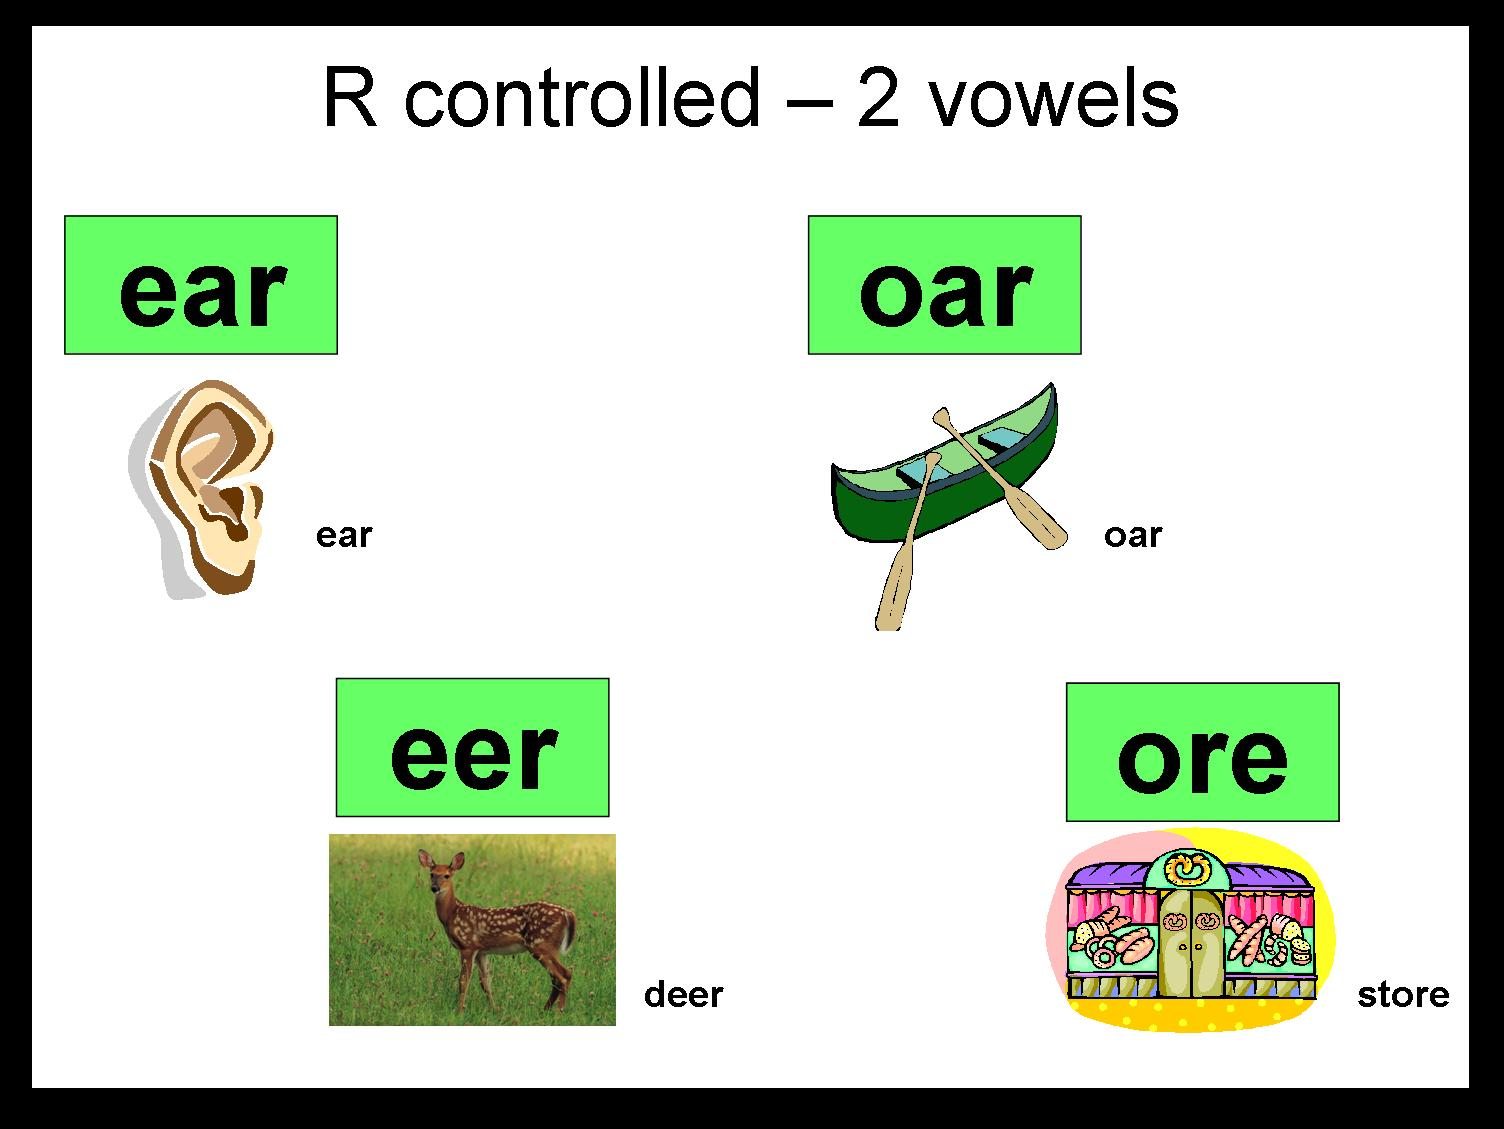 worksheet R Controlled Worksheets r controlled 2 vowel activities ear oar